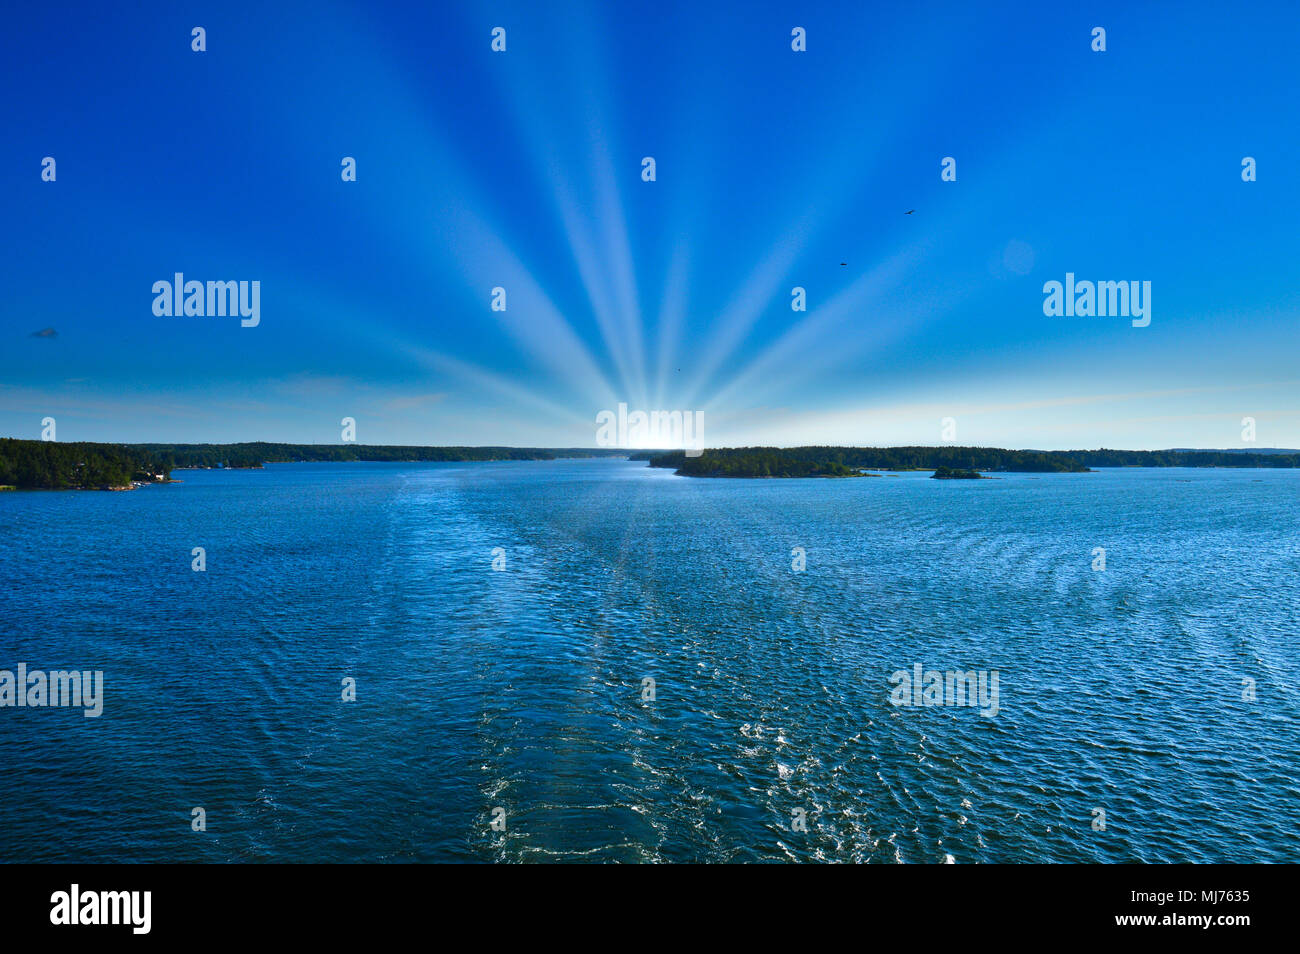 Sunray over Baltic Sea in area of Stockholm Archipelago, Sweden - Stock Image